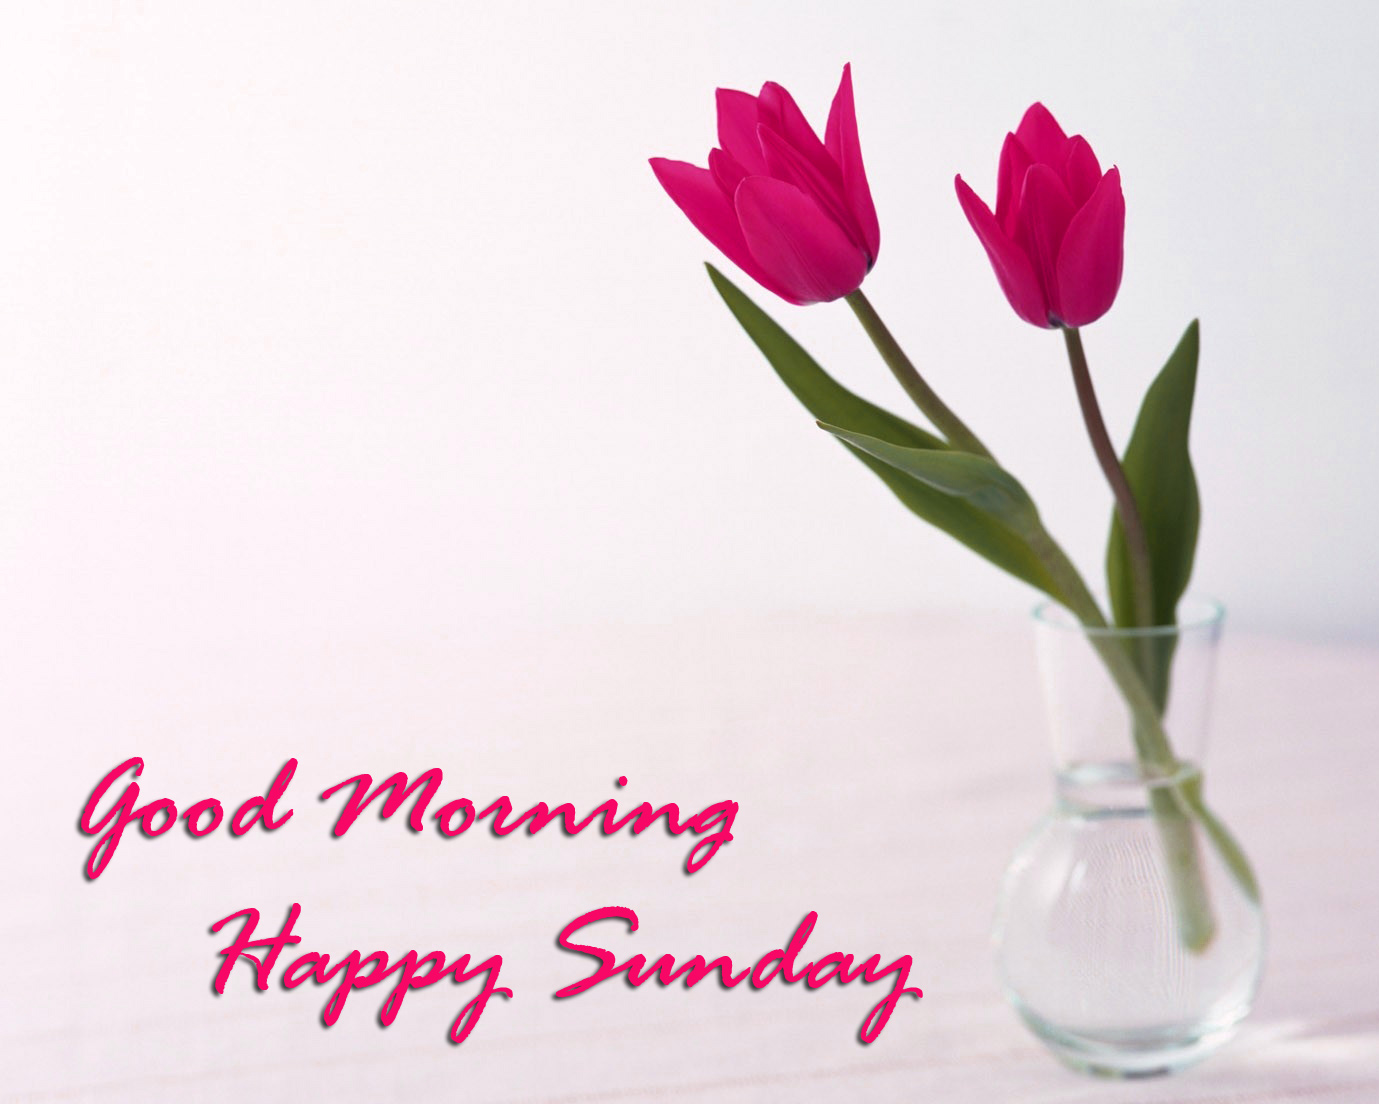 Sunday Good Morning Images Wallpaper Pics Download for Facebook